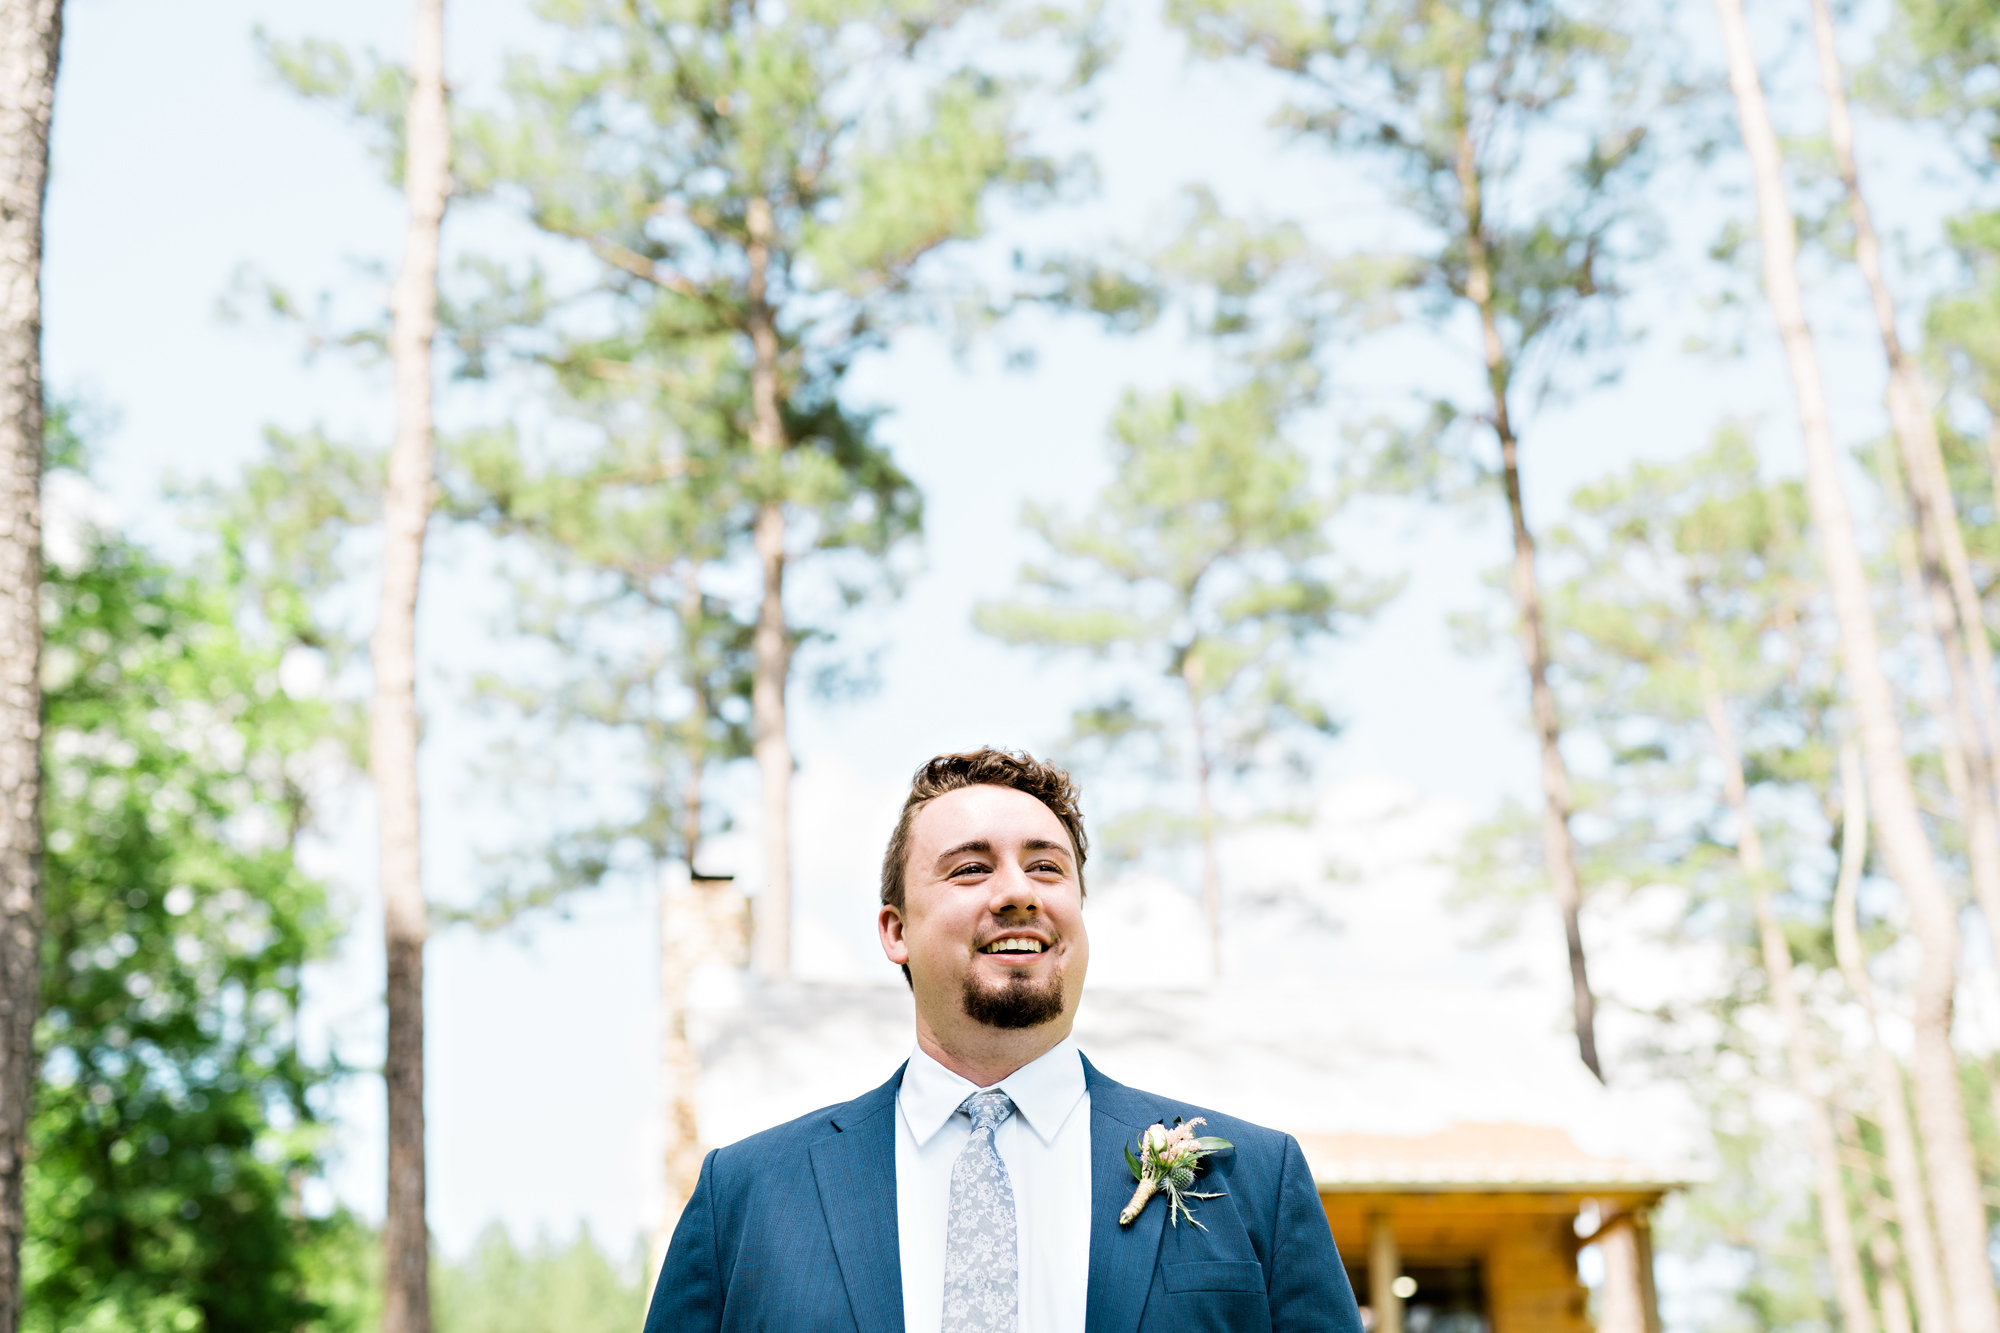 Eclectic-Alabama-Wedding-Photographers-Nick-Drollette-Photography-76.jpg